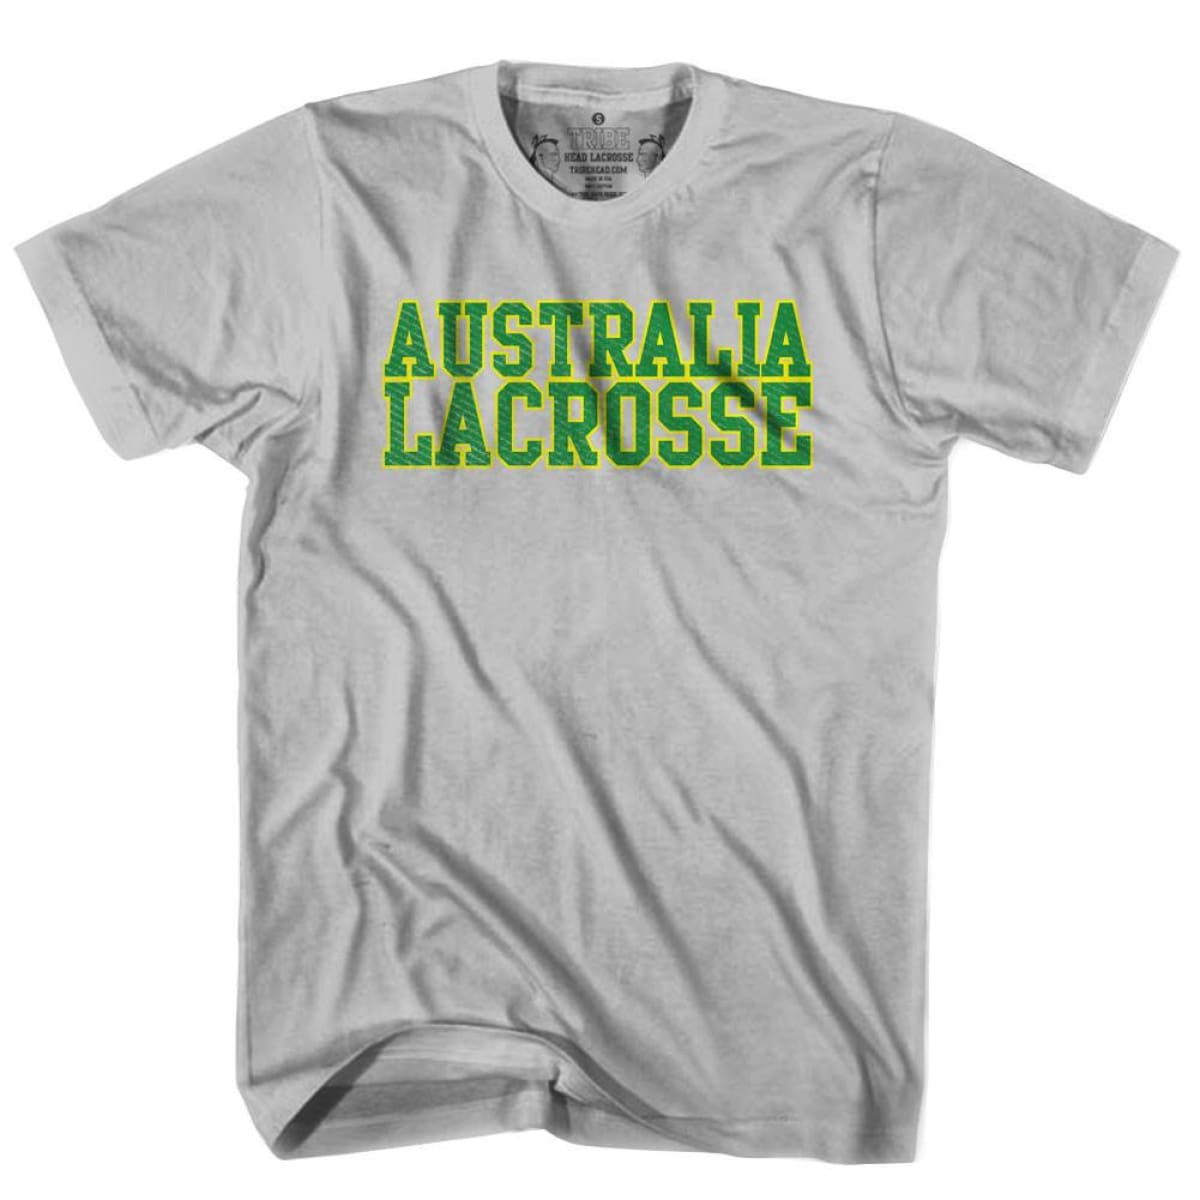 Australia Lacrosse Nation T-shirt - Cool Grey / Youth X-Small - Lacrosse T-shirt